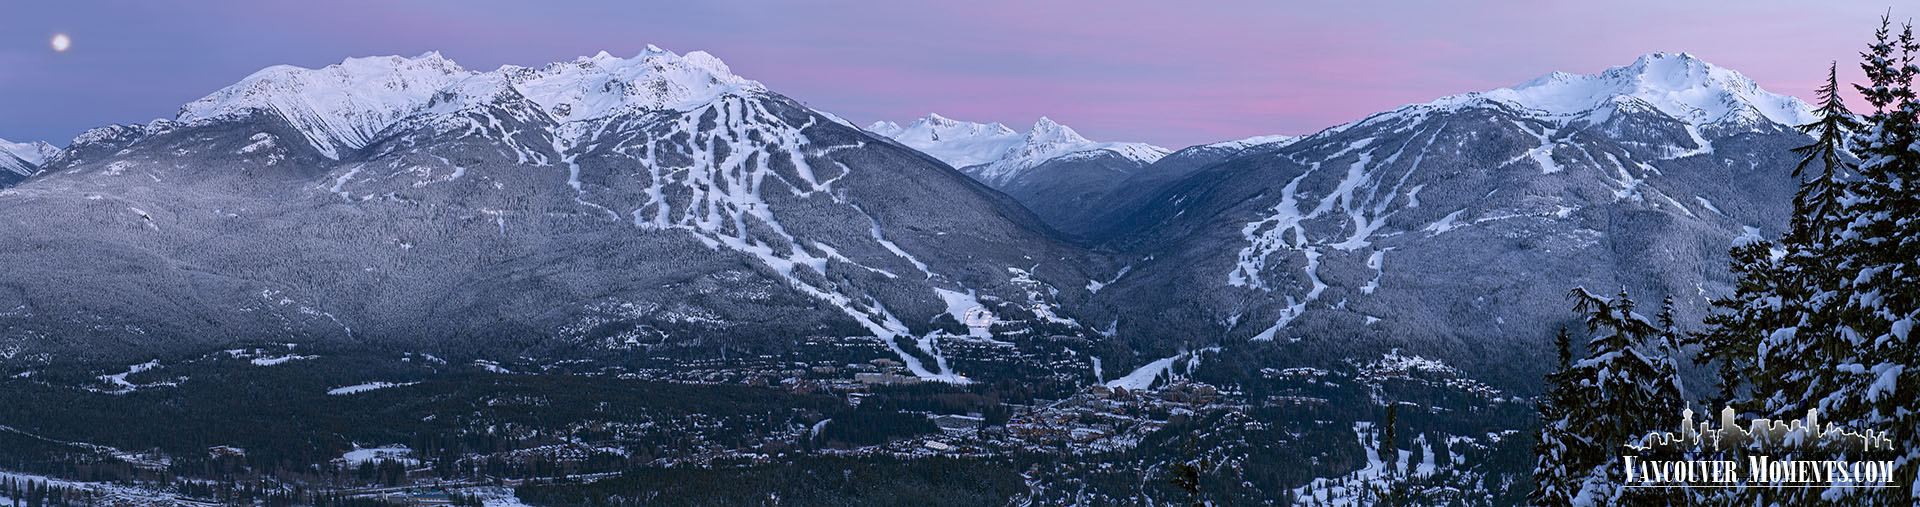 Whistler_Blackcomb_Valley_Dusk_WB076A-Manfred Kraus